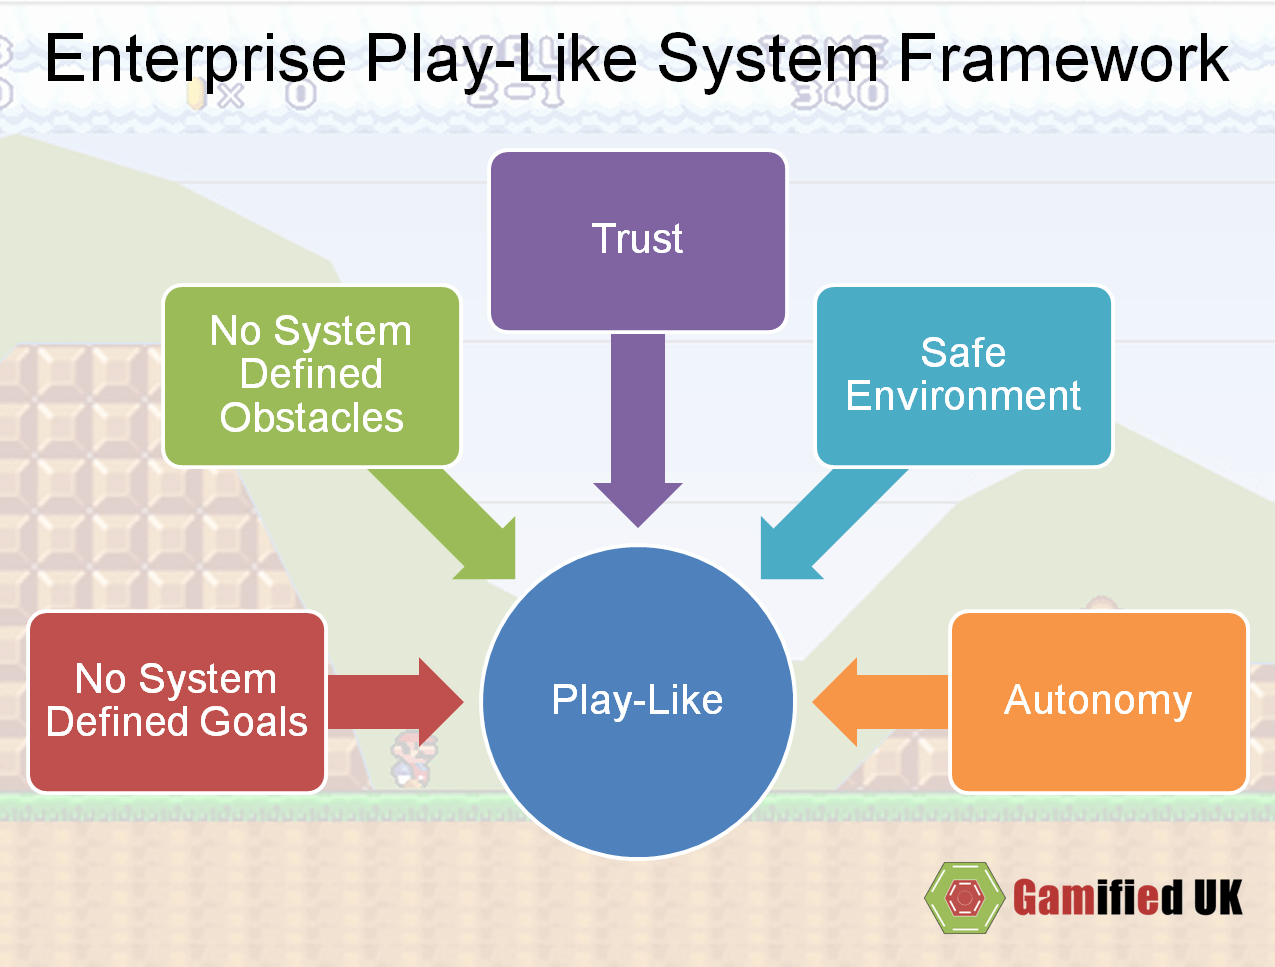 Enterprise Play-Like System Framework